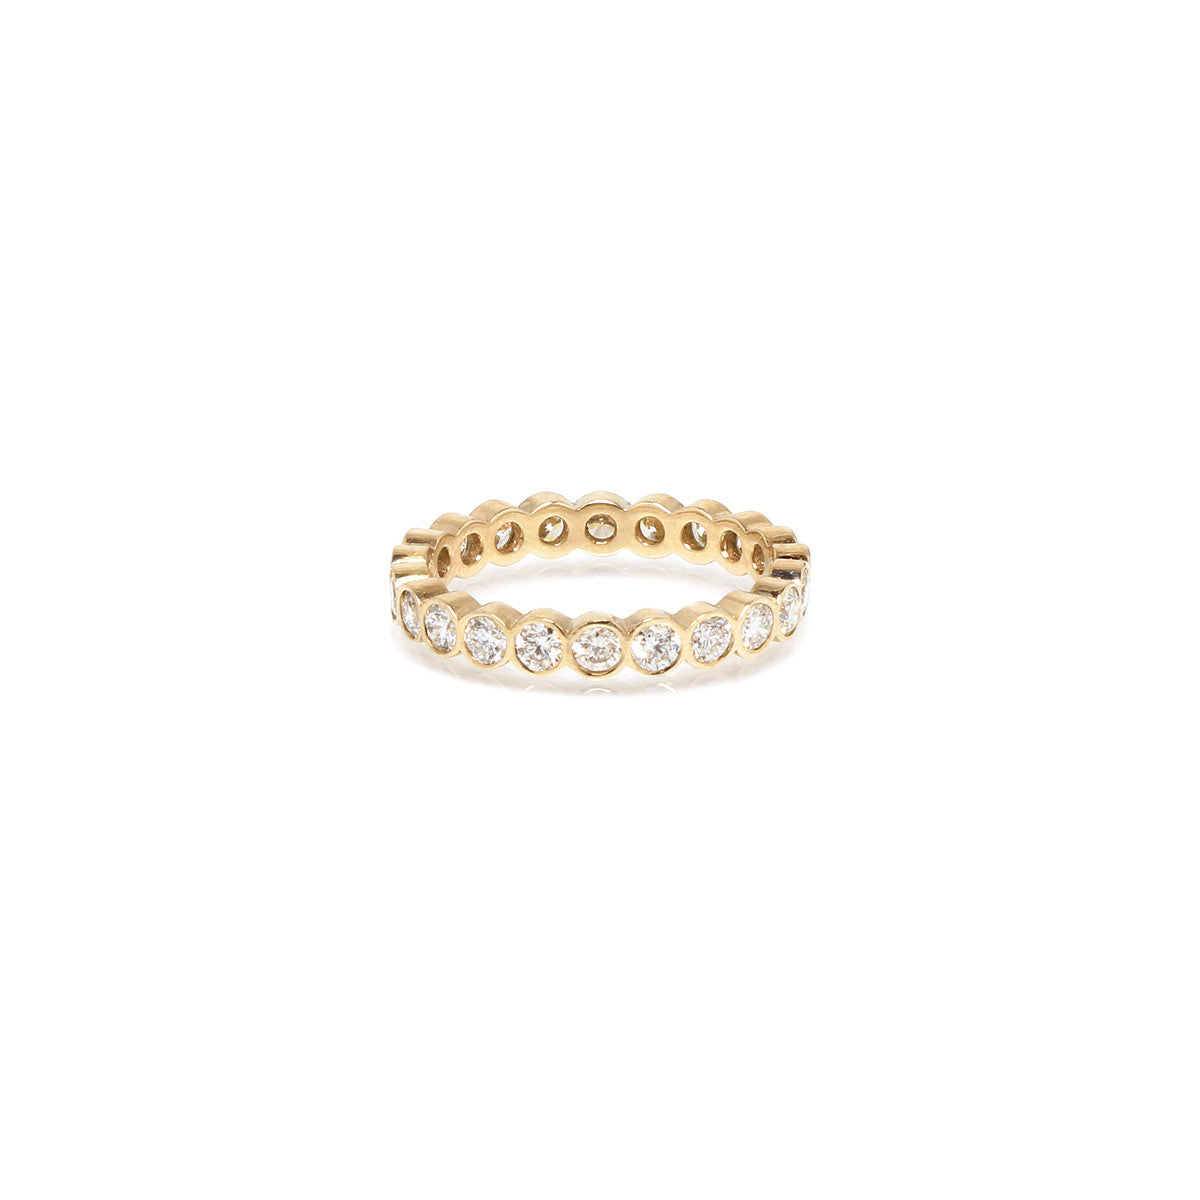 14k 5pt bezel set diamond eternity band